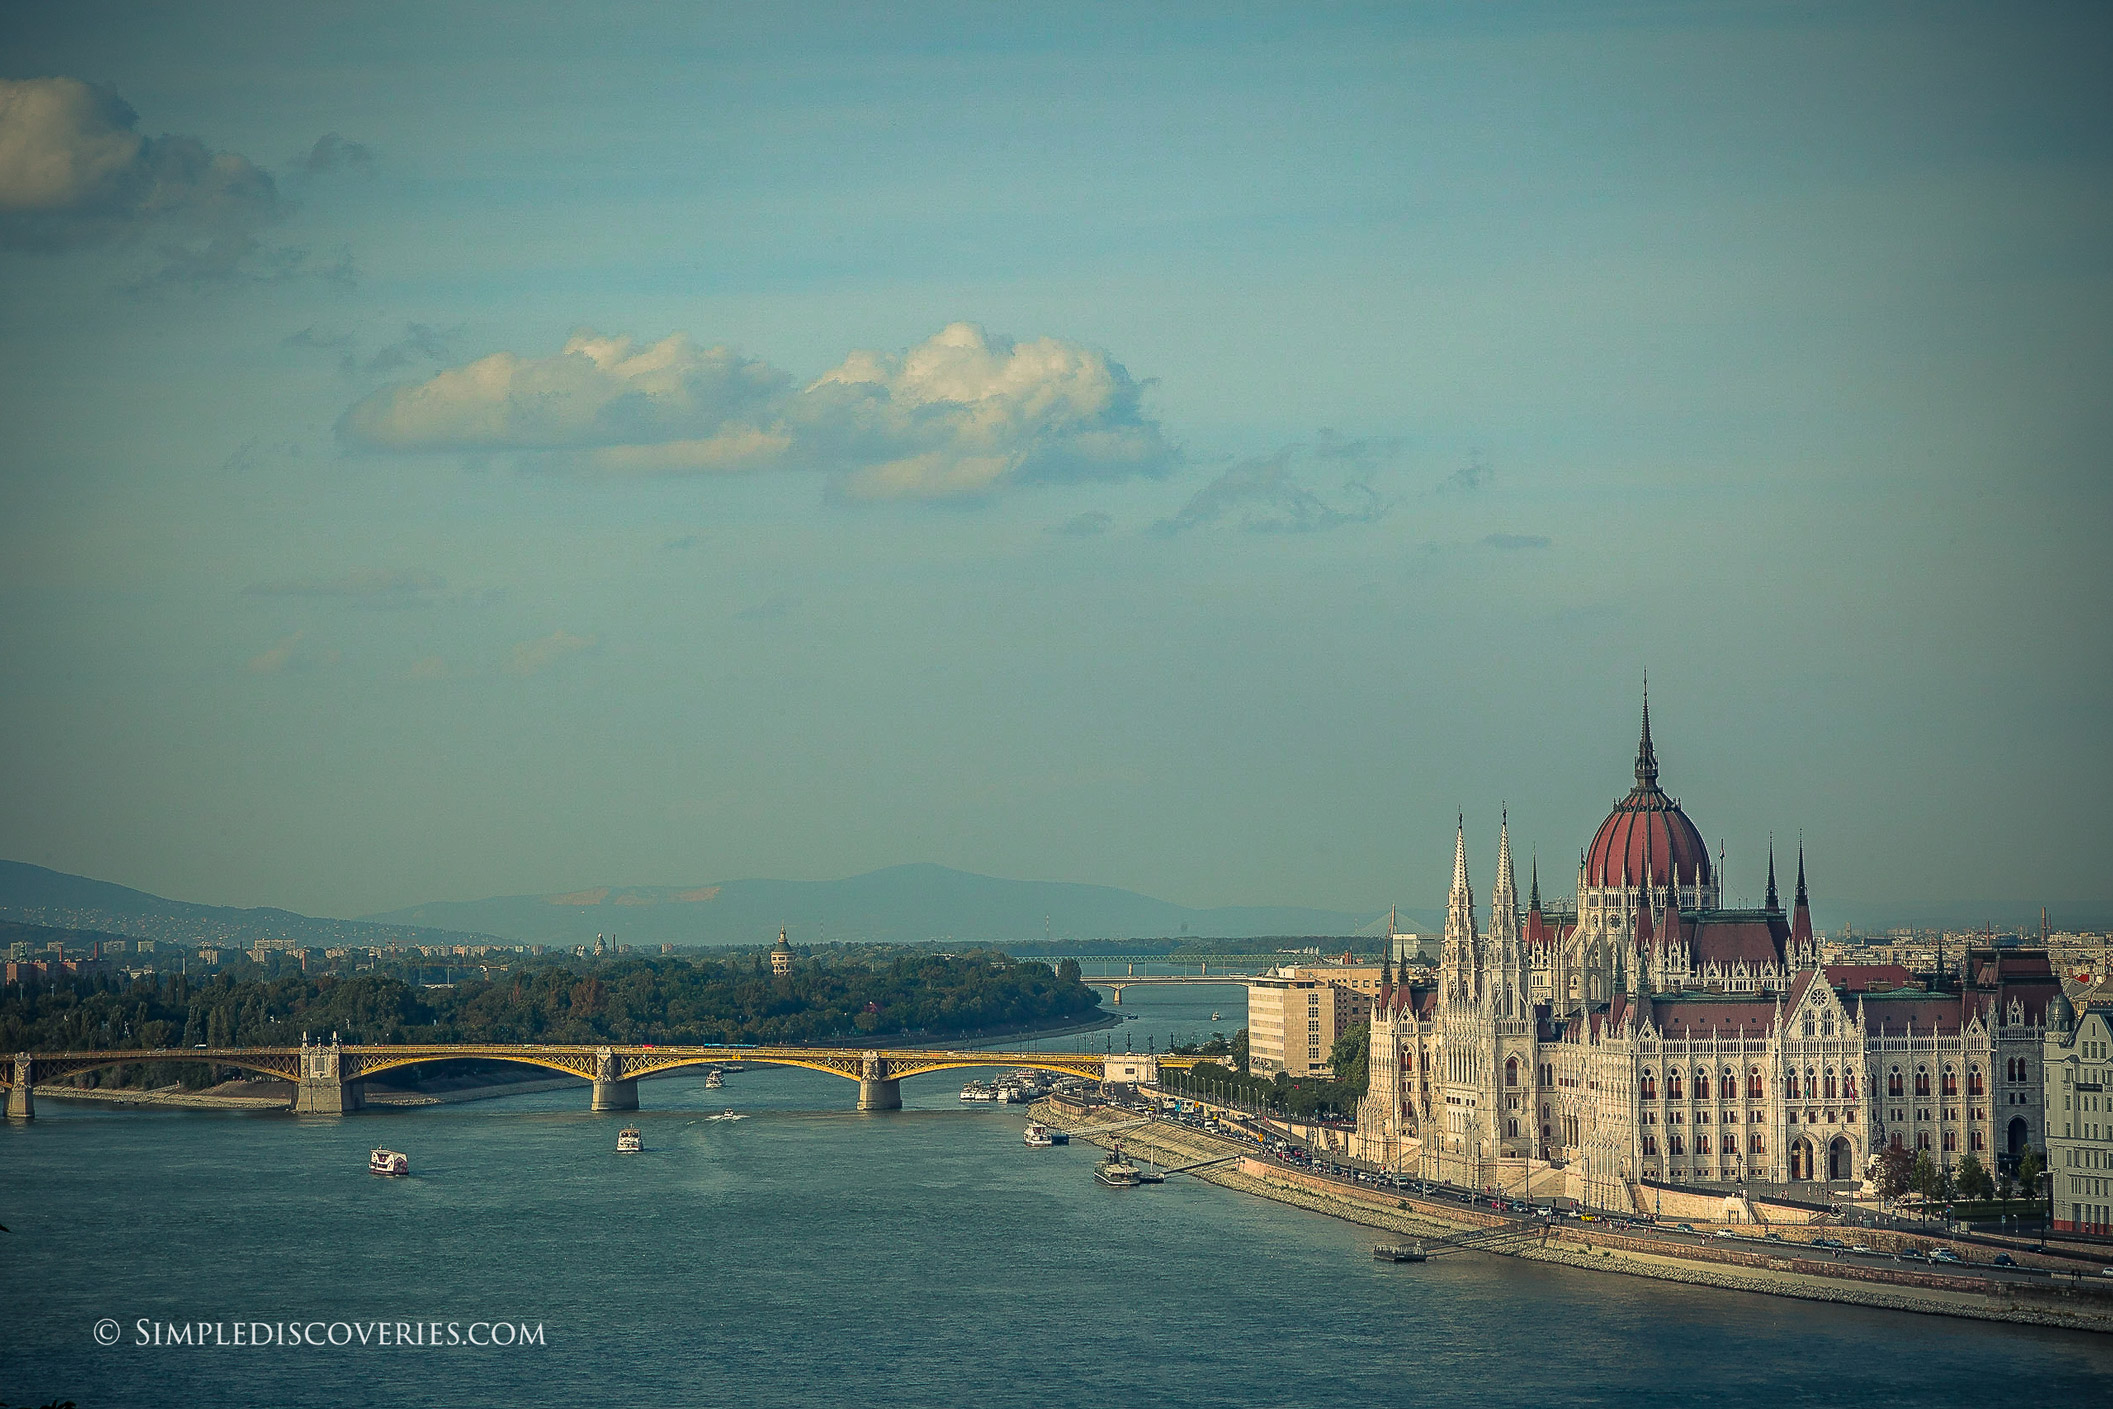 pest_budapest_view_danube